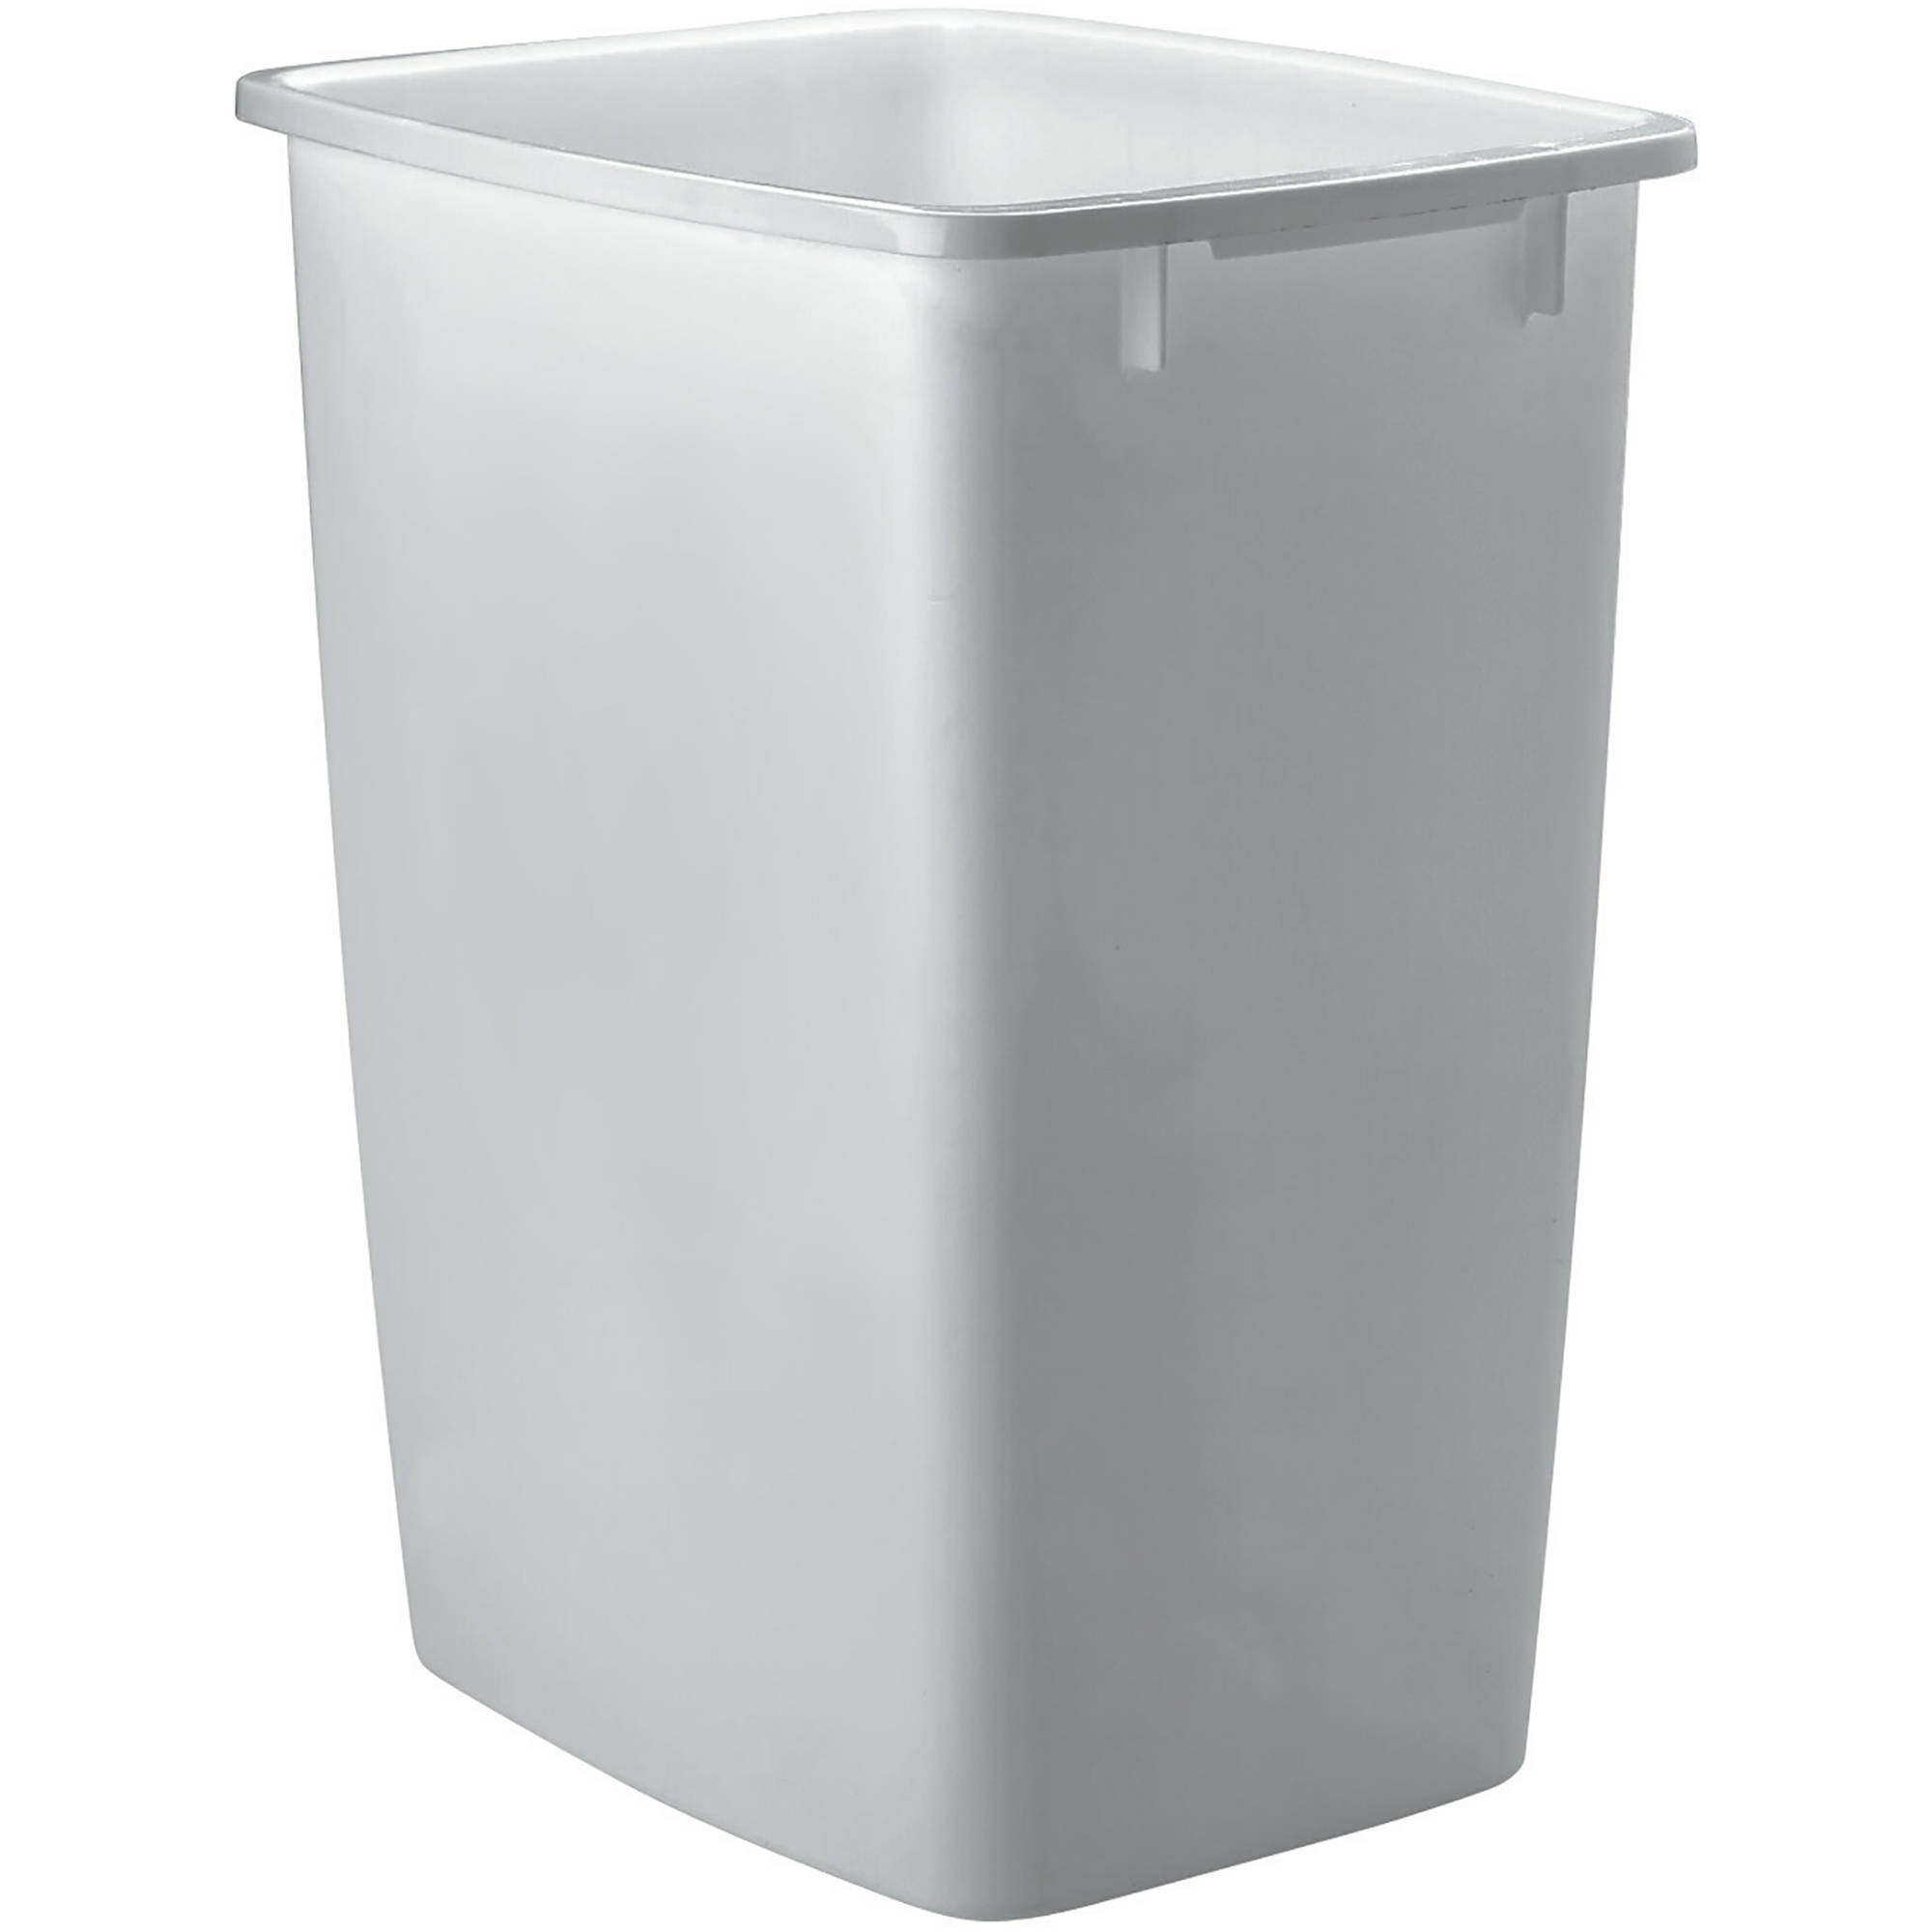 Rubbermaid Wastebasket, 9 Gal, White - Walmart.com